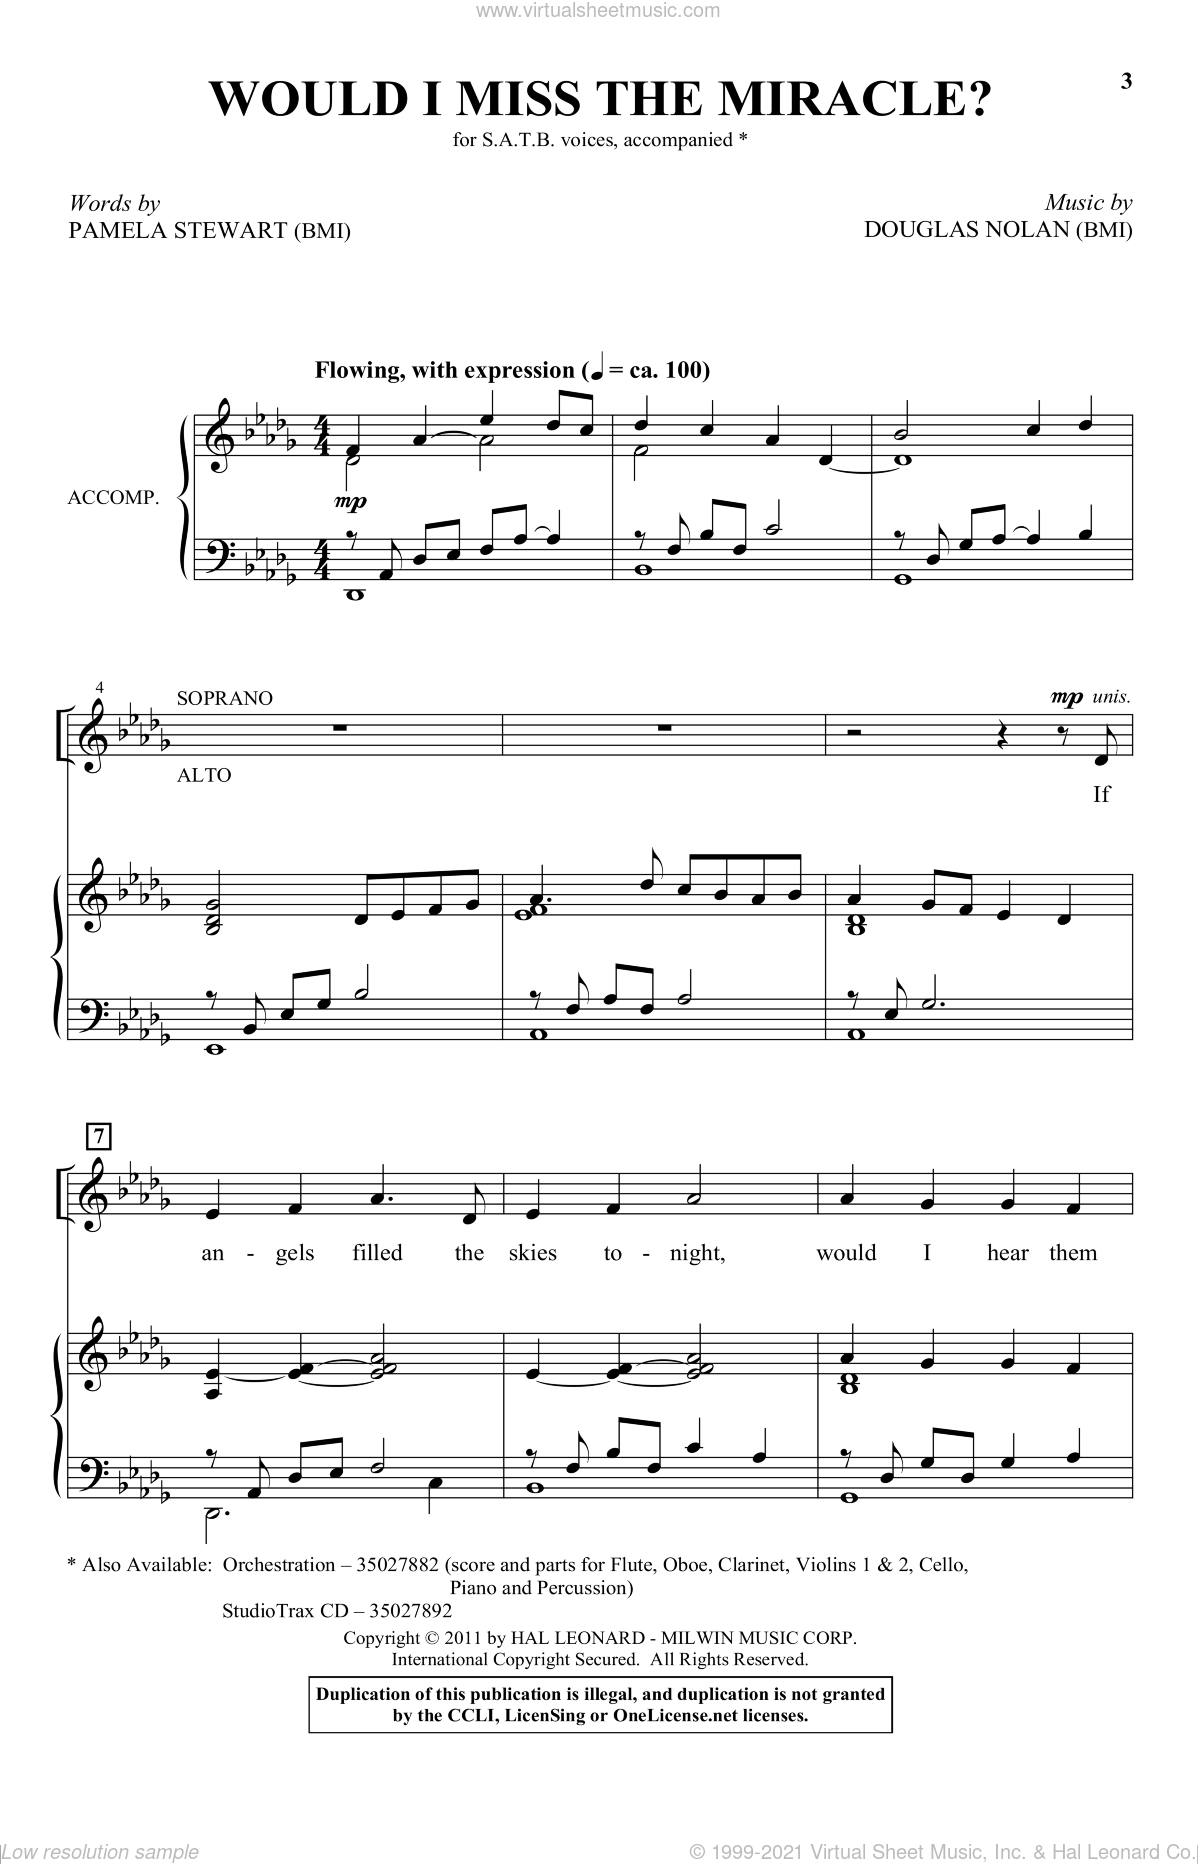 Would I Miss The Miracle? sheet music for choir (SATB: soprano, alto, tenor, bass) by Douglas Nolan and Pamela Stewart, intermediate skill level